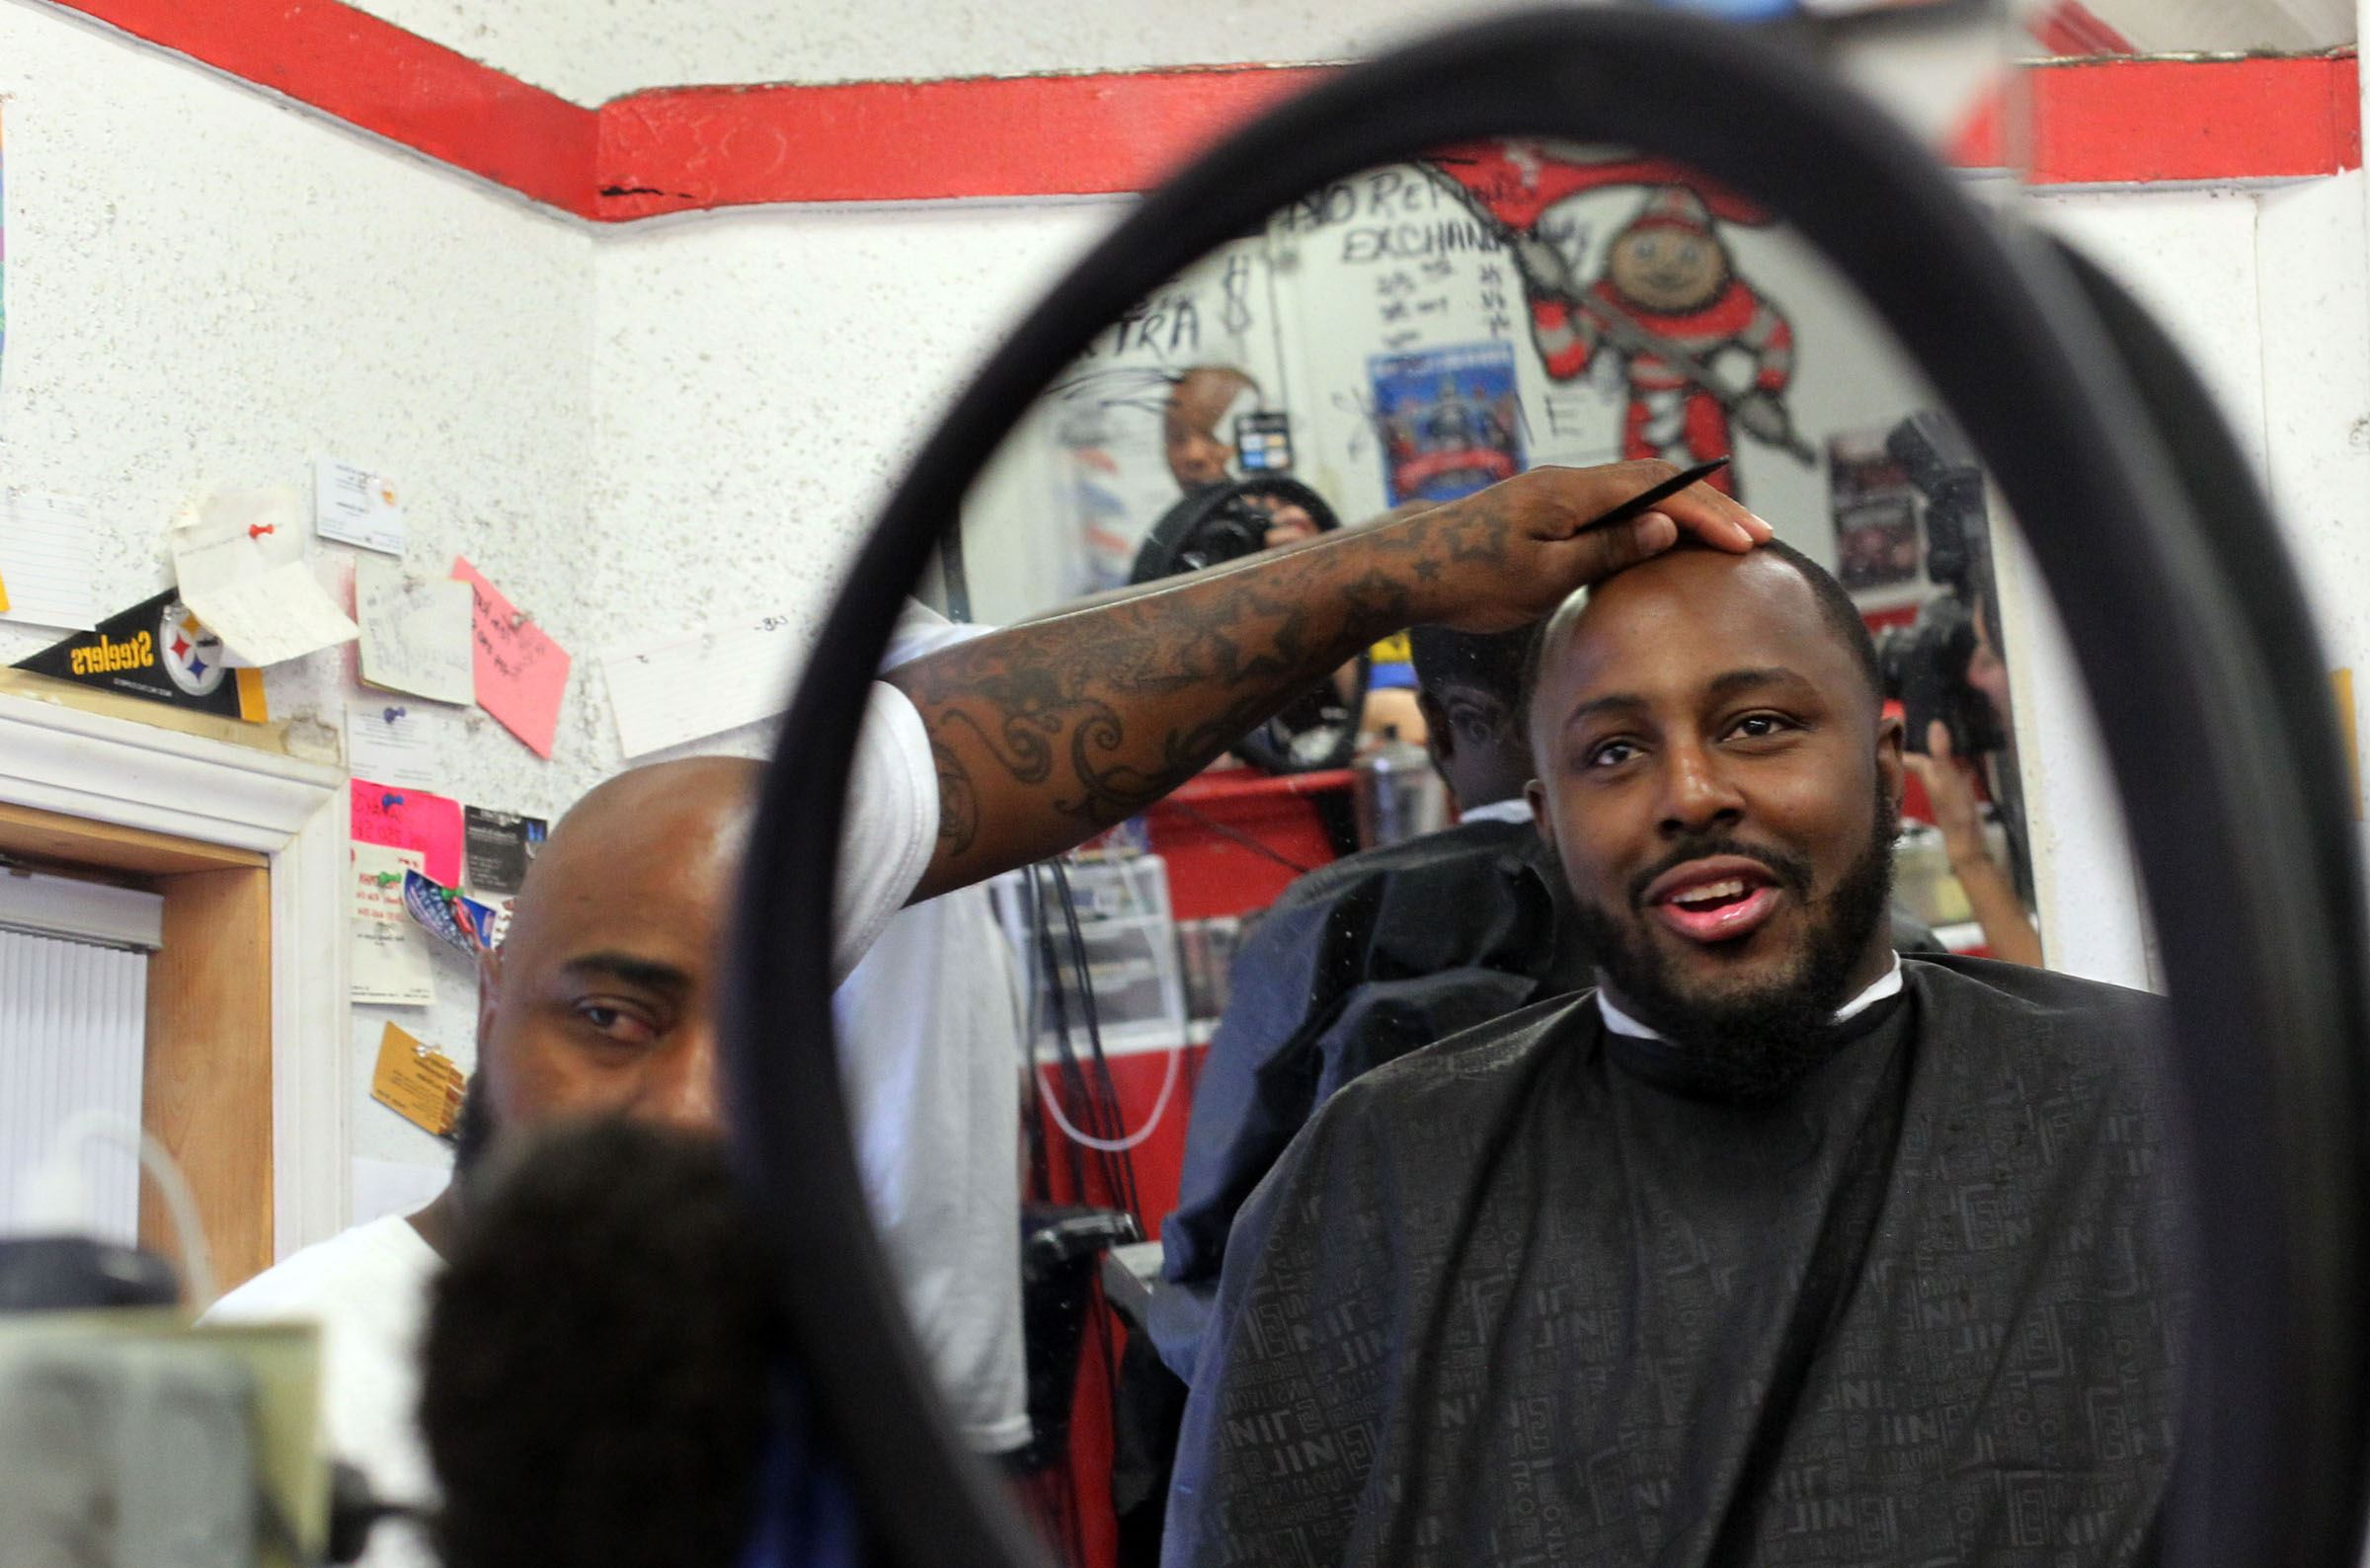 Haircut coupons toledo ohio - Charles Smith Smiles As He Inspects His Haircut In The Mirror At Da Shop In Toledo Ohio On September 11 2015 Smith Says He Comes In Once A Week For A